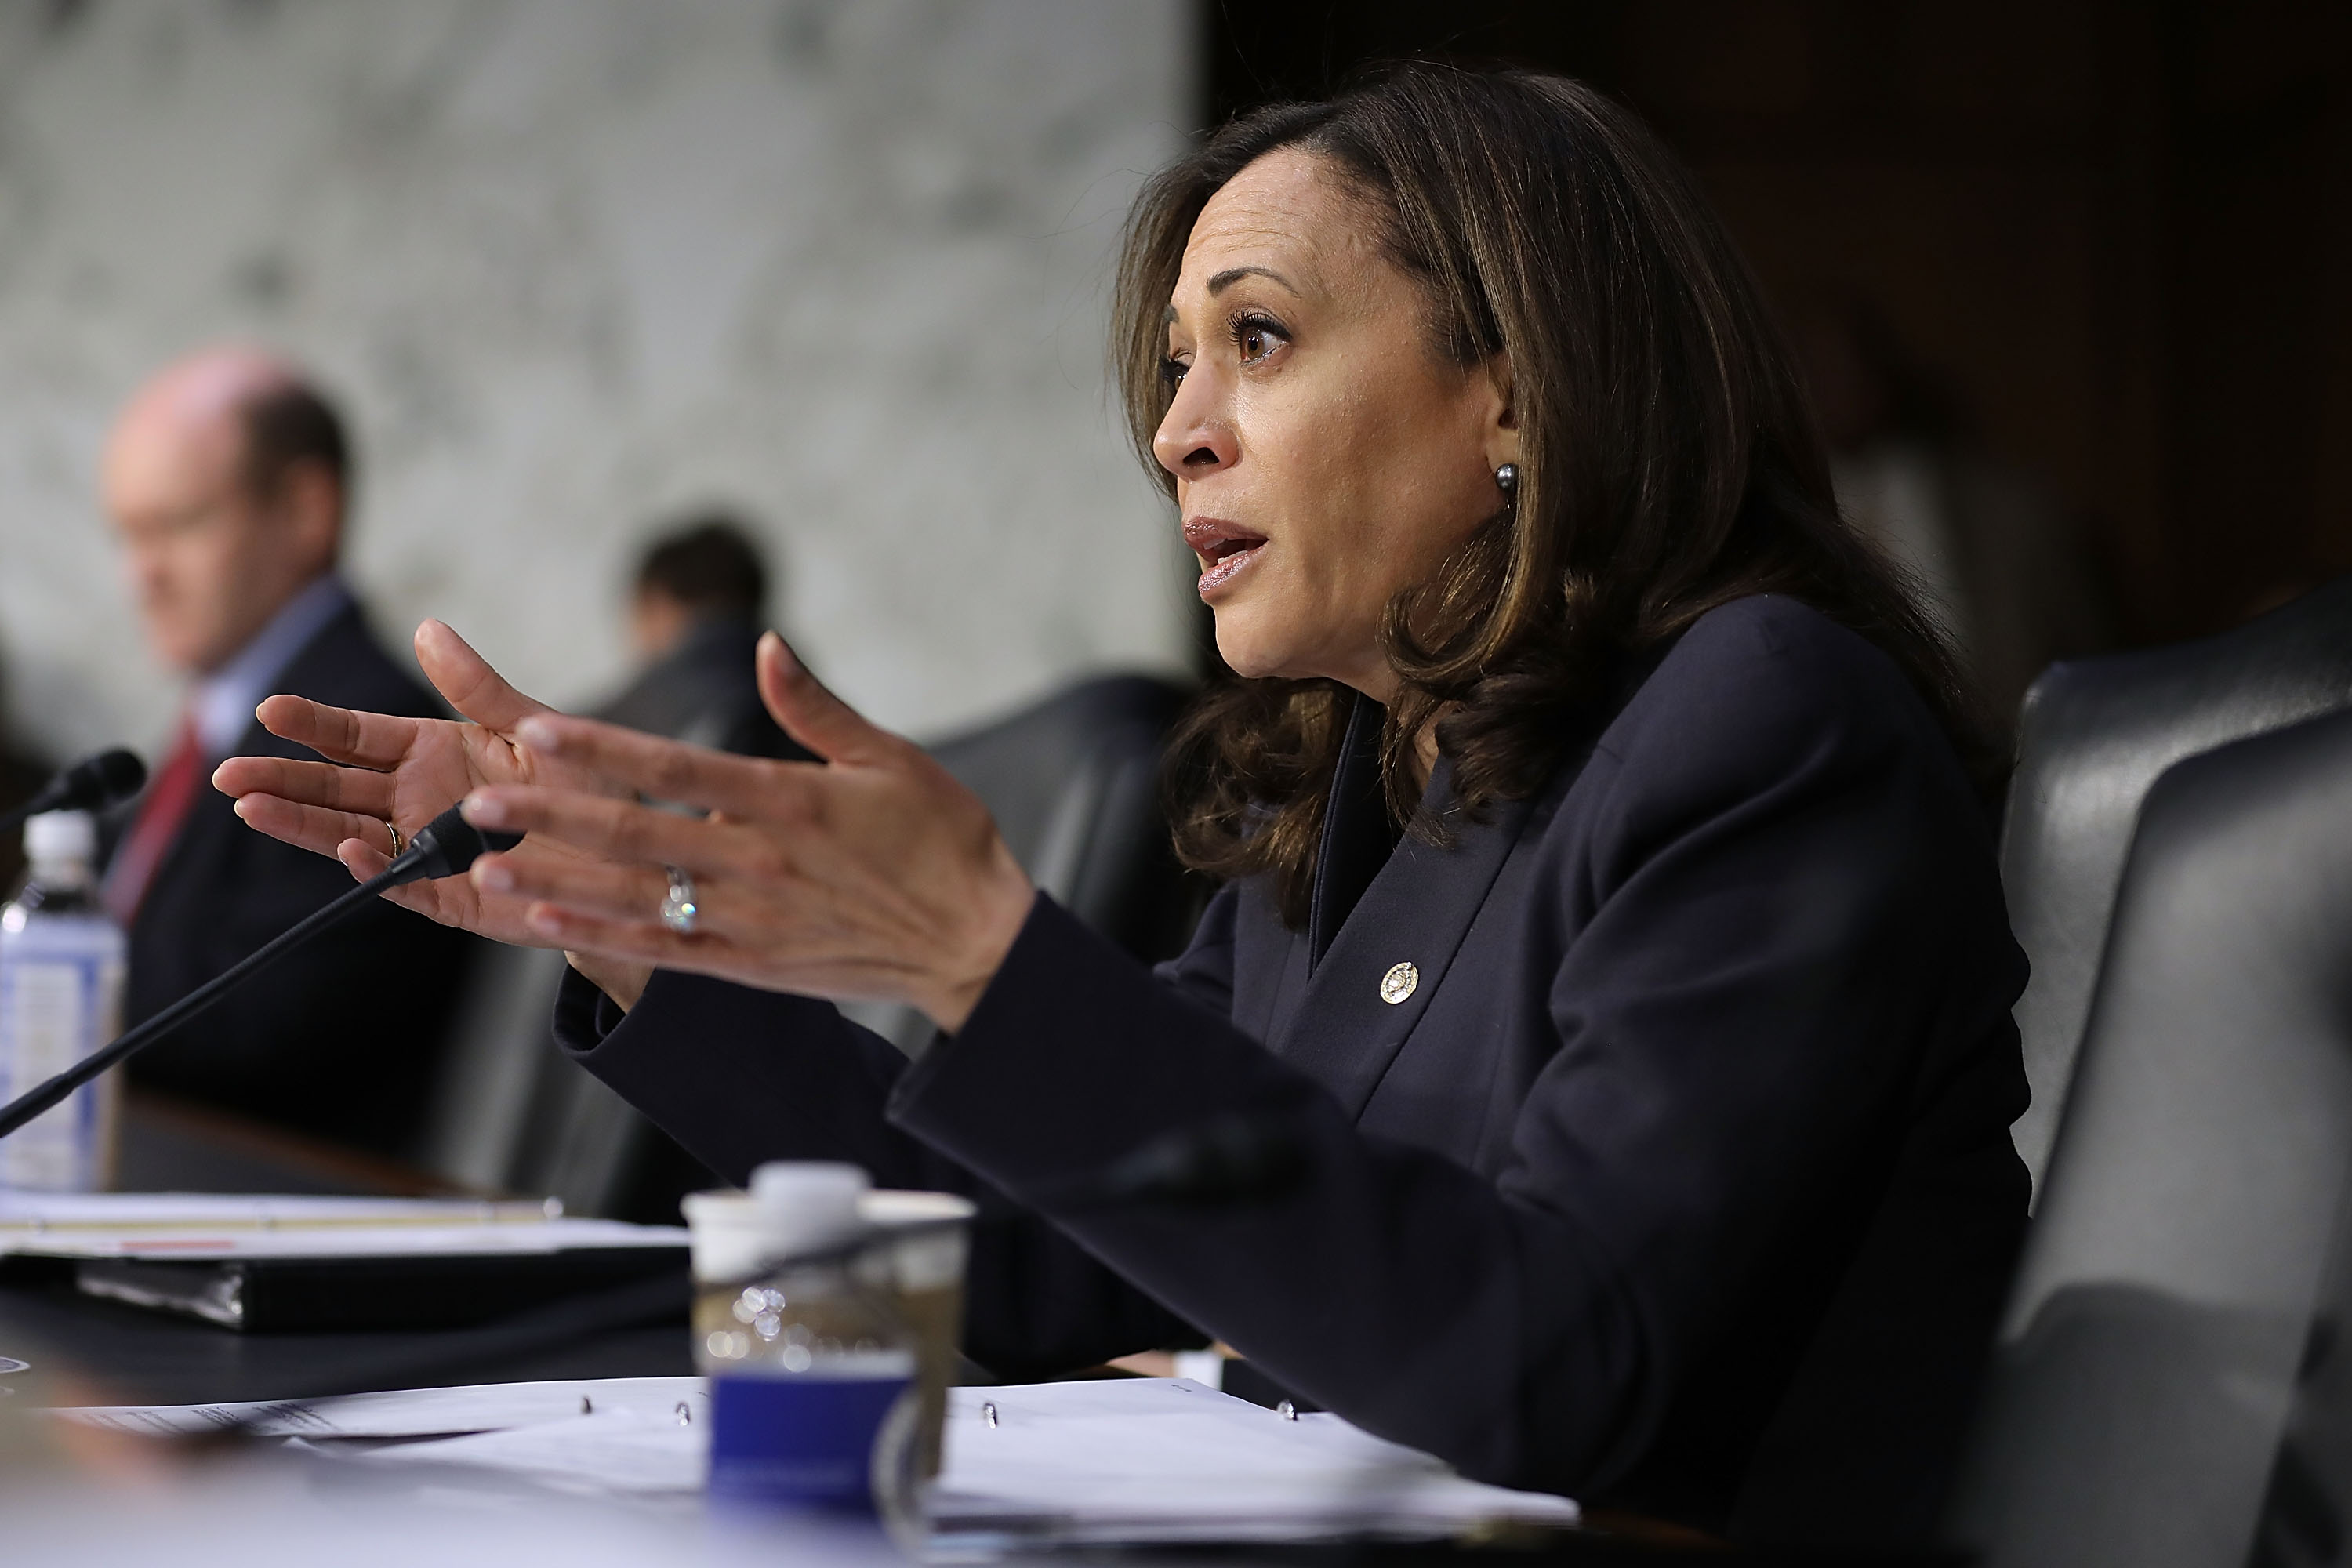 Sen. Harris tells federal agencies to get serious about facial recognition risks